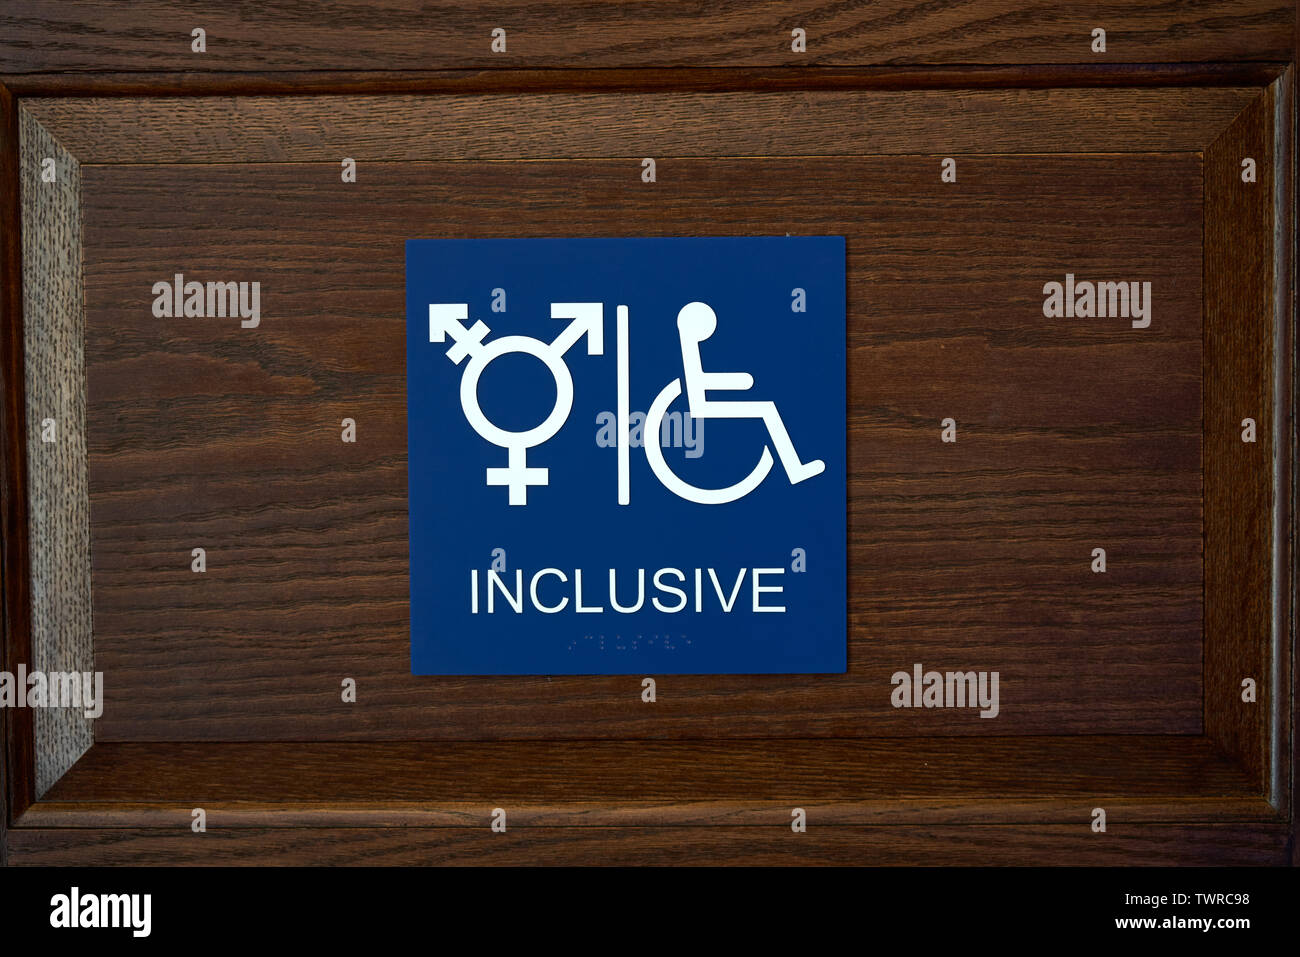 ADA Compliant Gender Inclusive Symbol Restroom Wall Sign with Wheelchair Symbol and braille - Stock Image